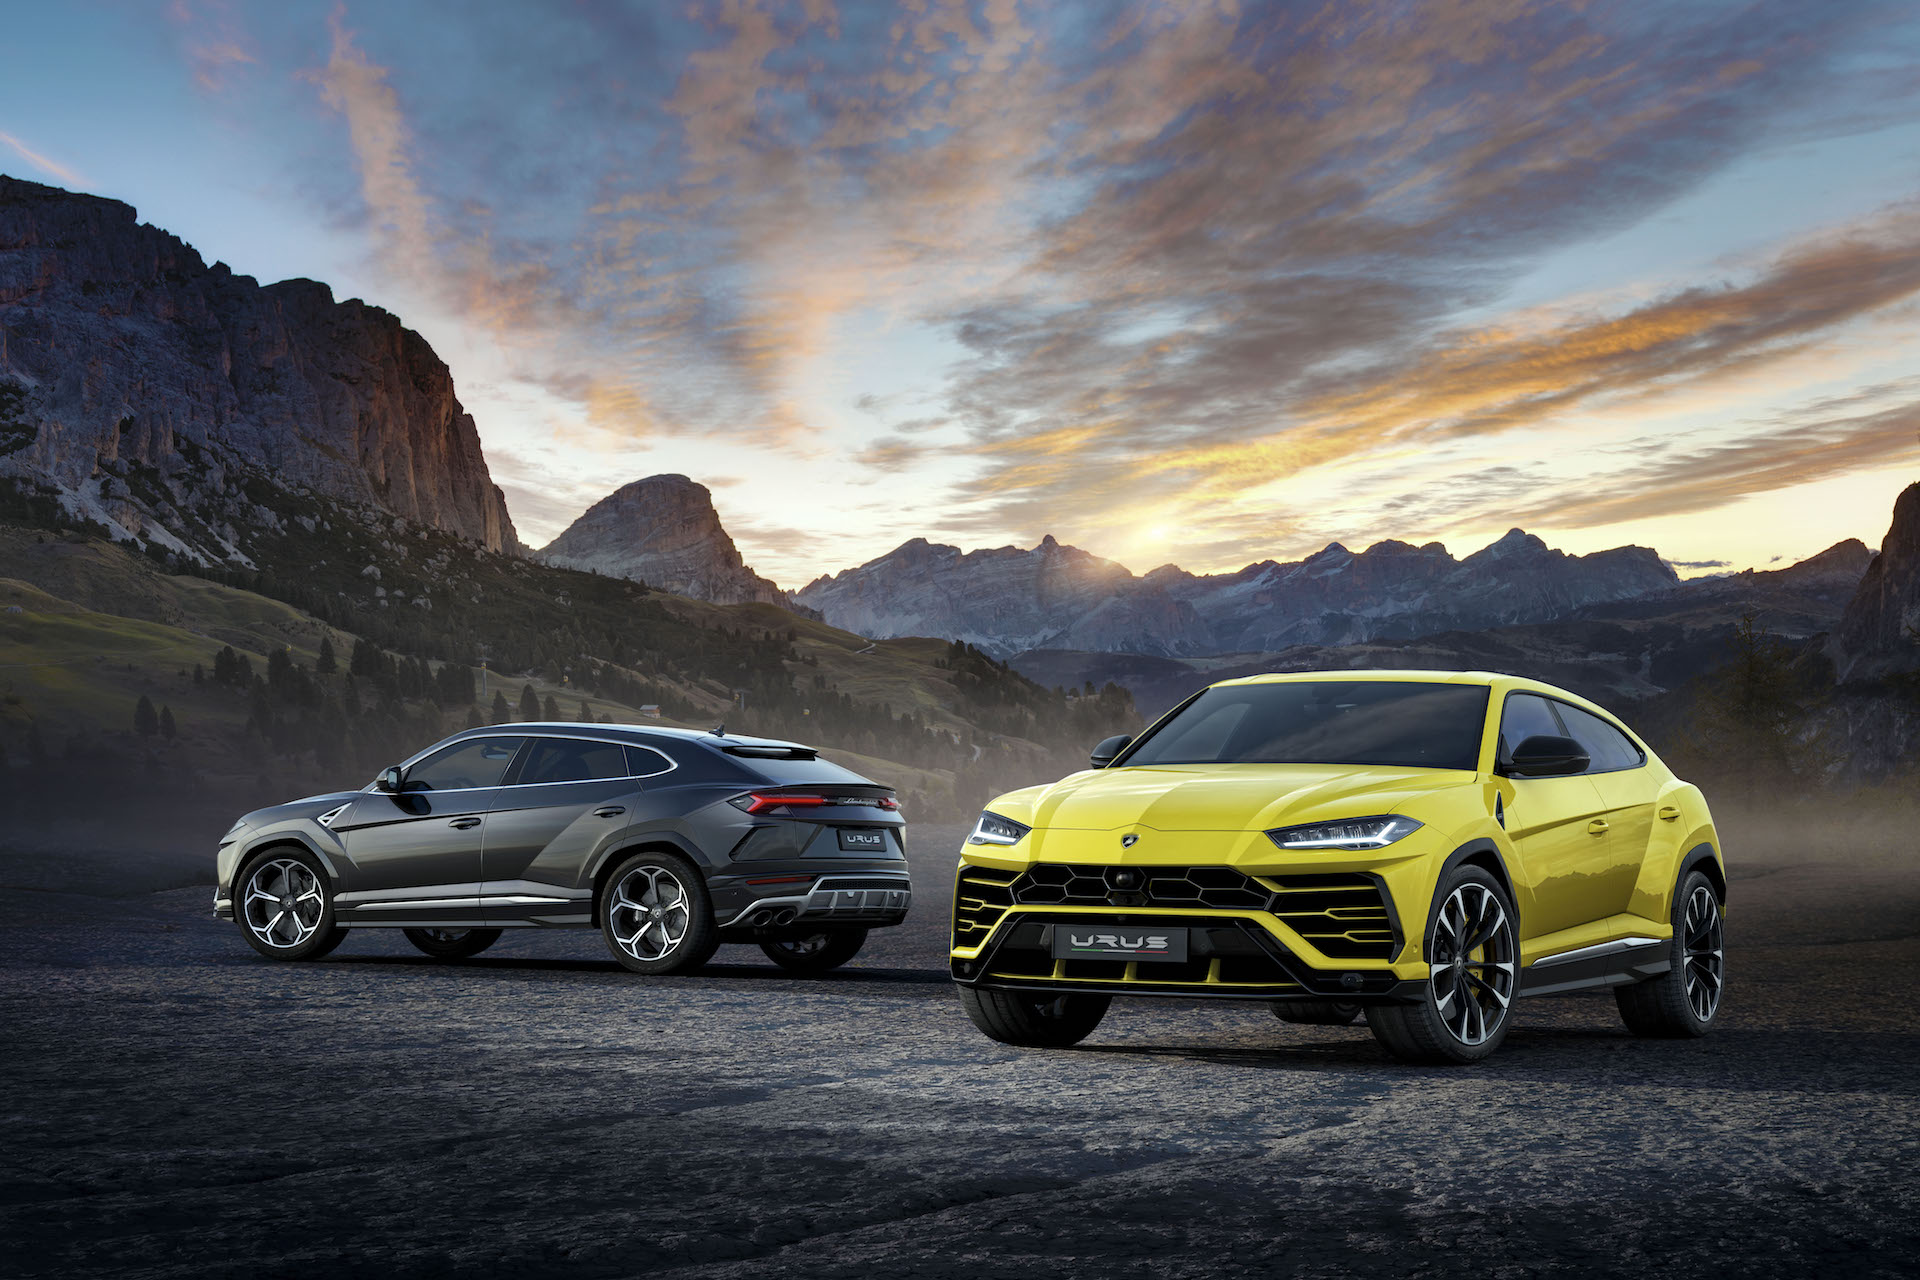 Lamborghini's Urus is their new Super SUV (Video)